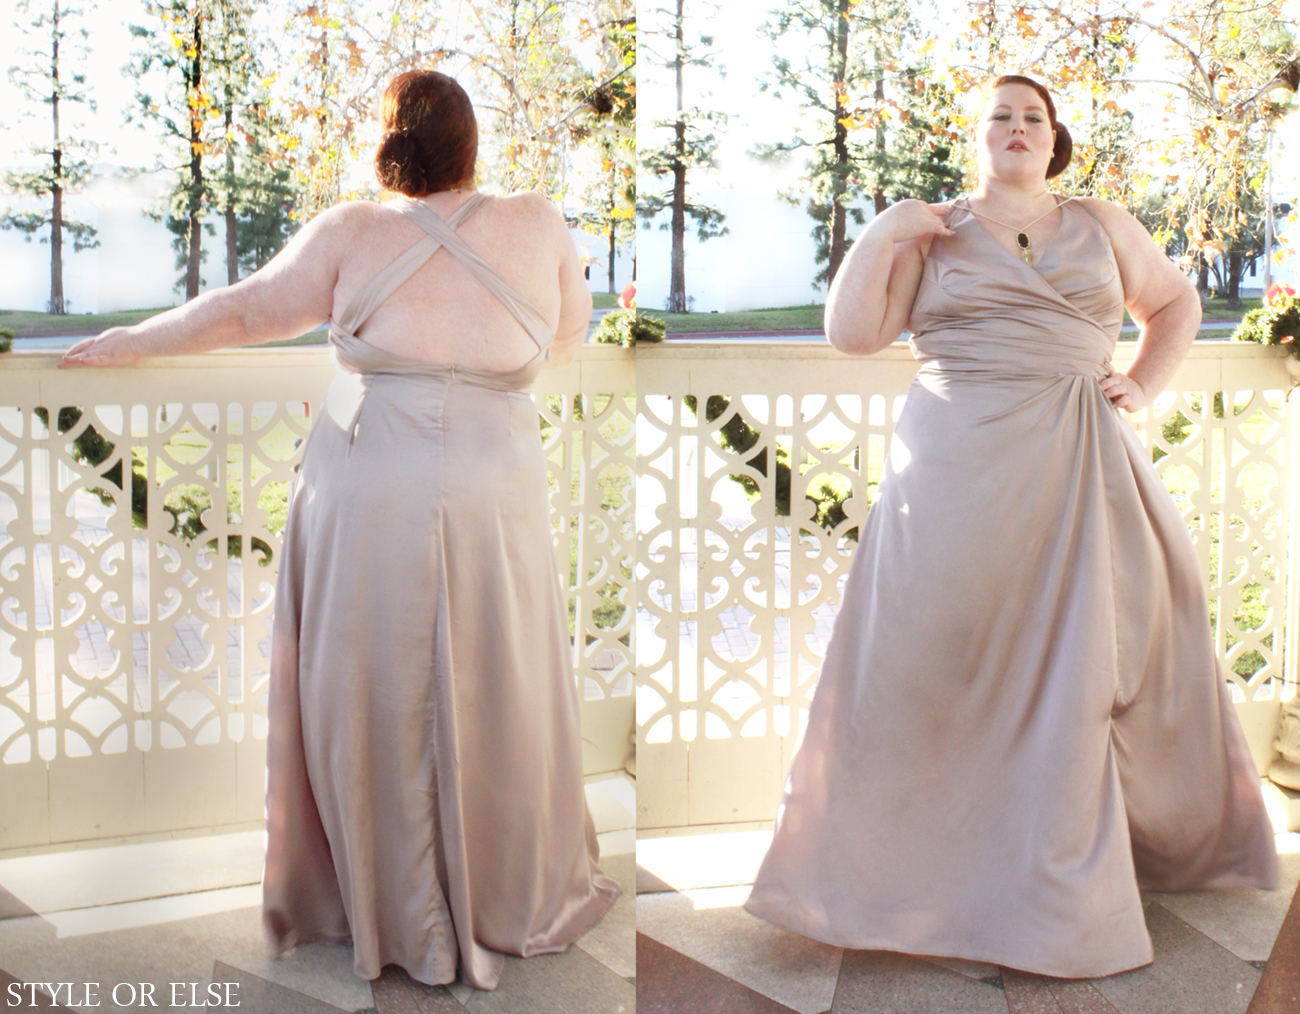 Style or else eshakti custom fit gown review eshakti custom fit gown review ombrellifo Images